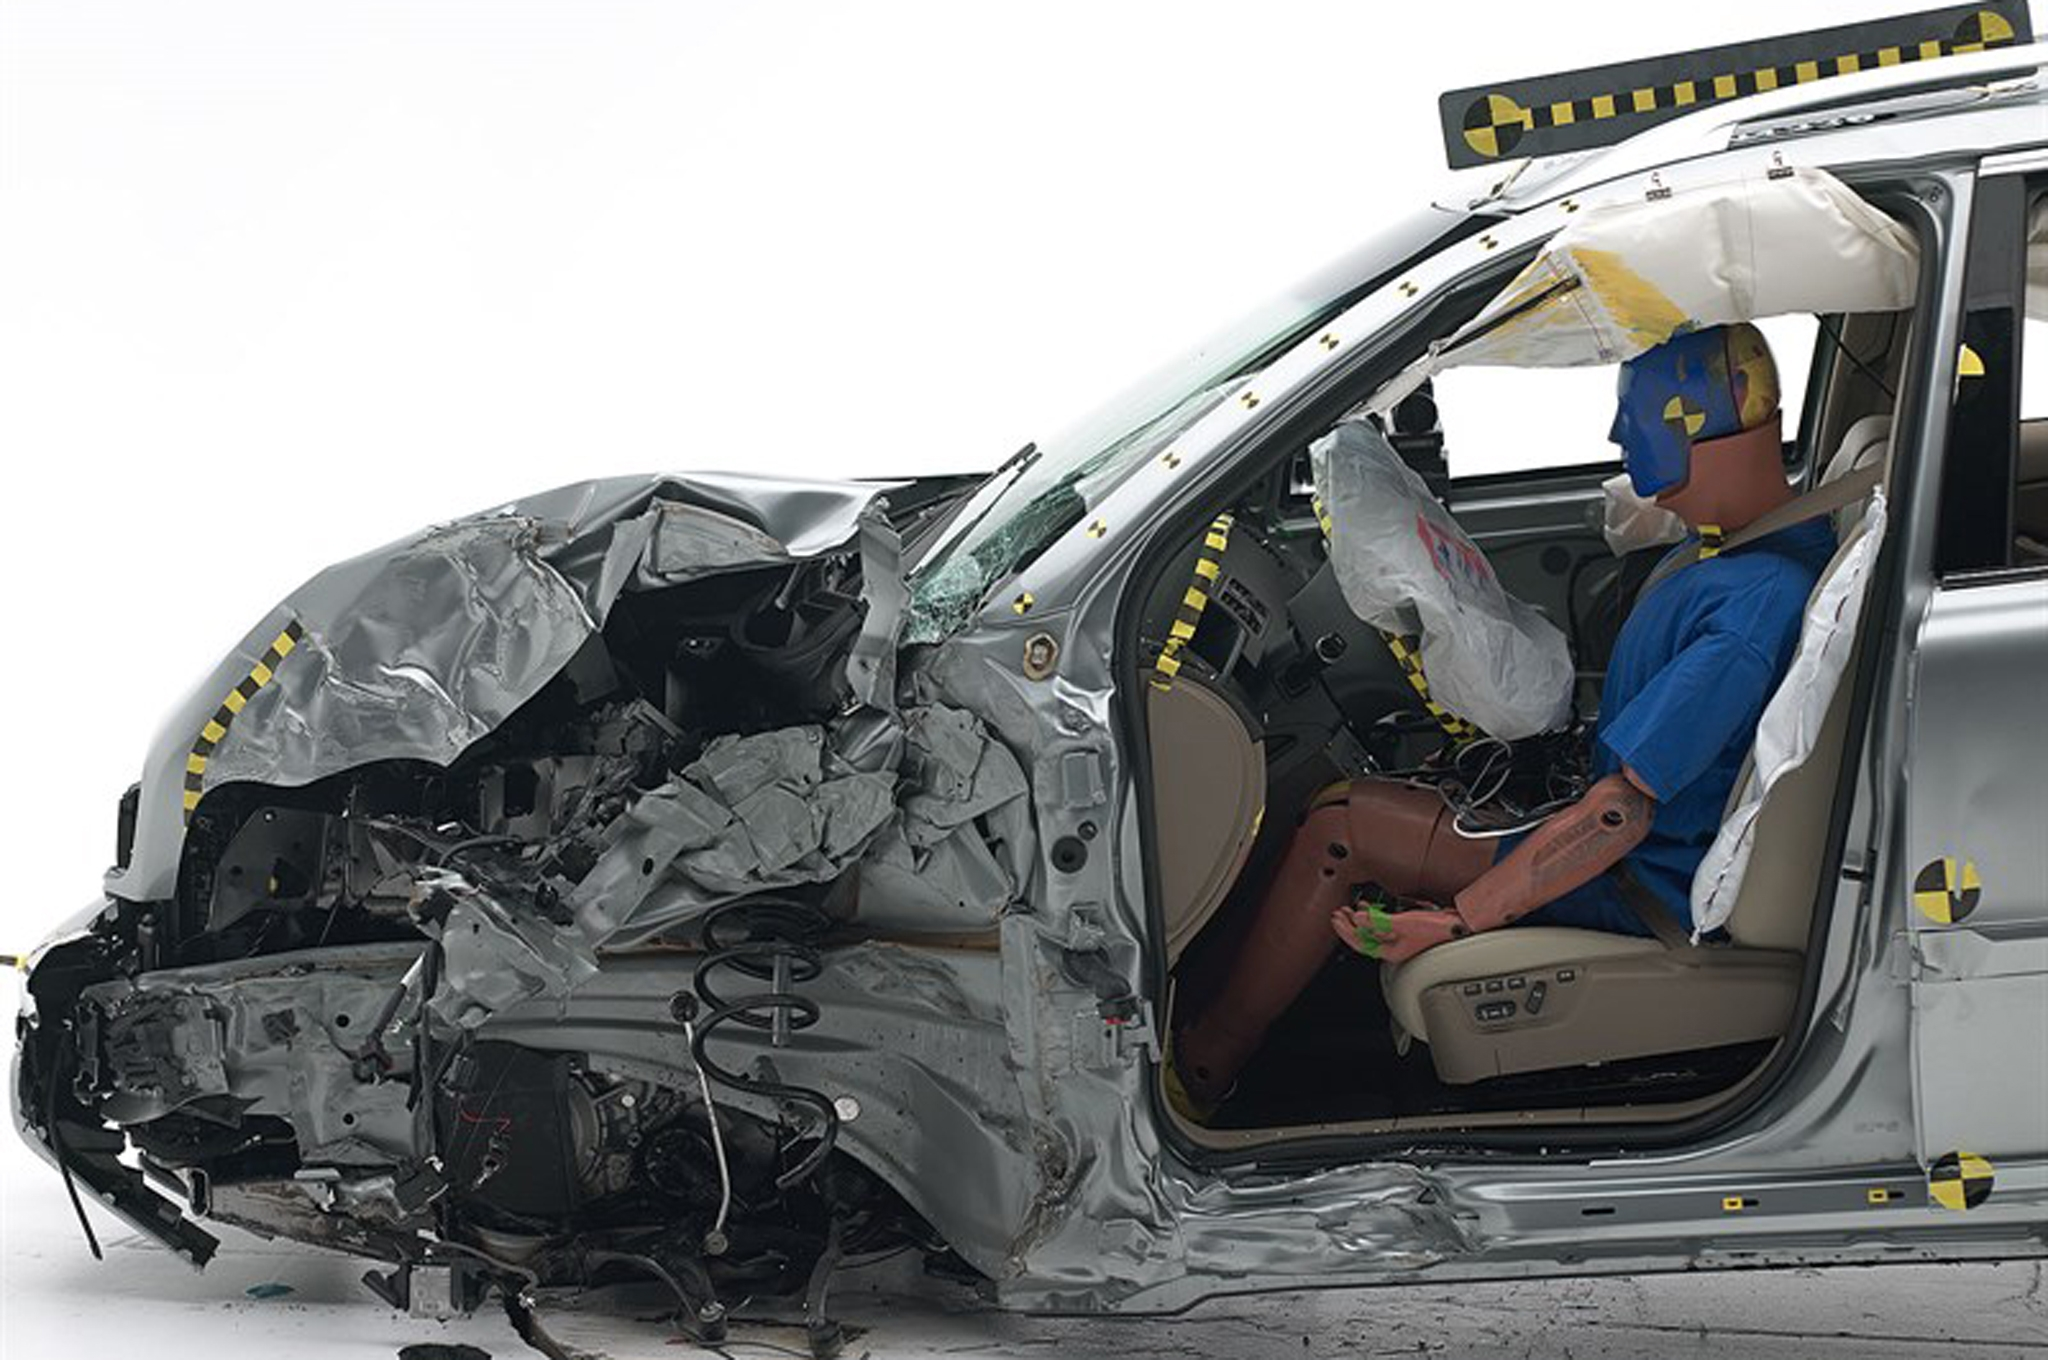 Crash Tests And Safety Have Fun Buying Cars With Barbara